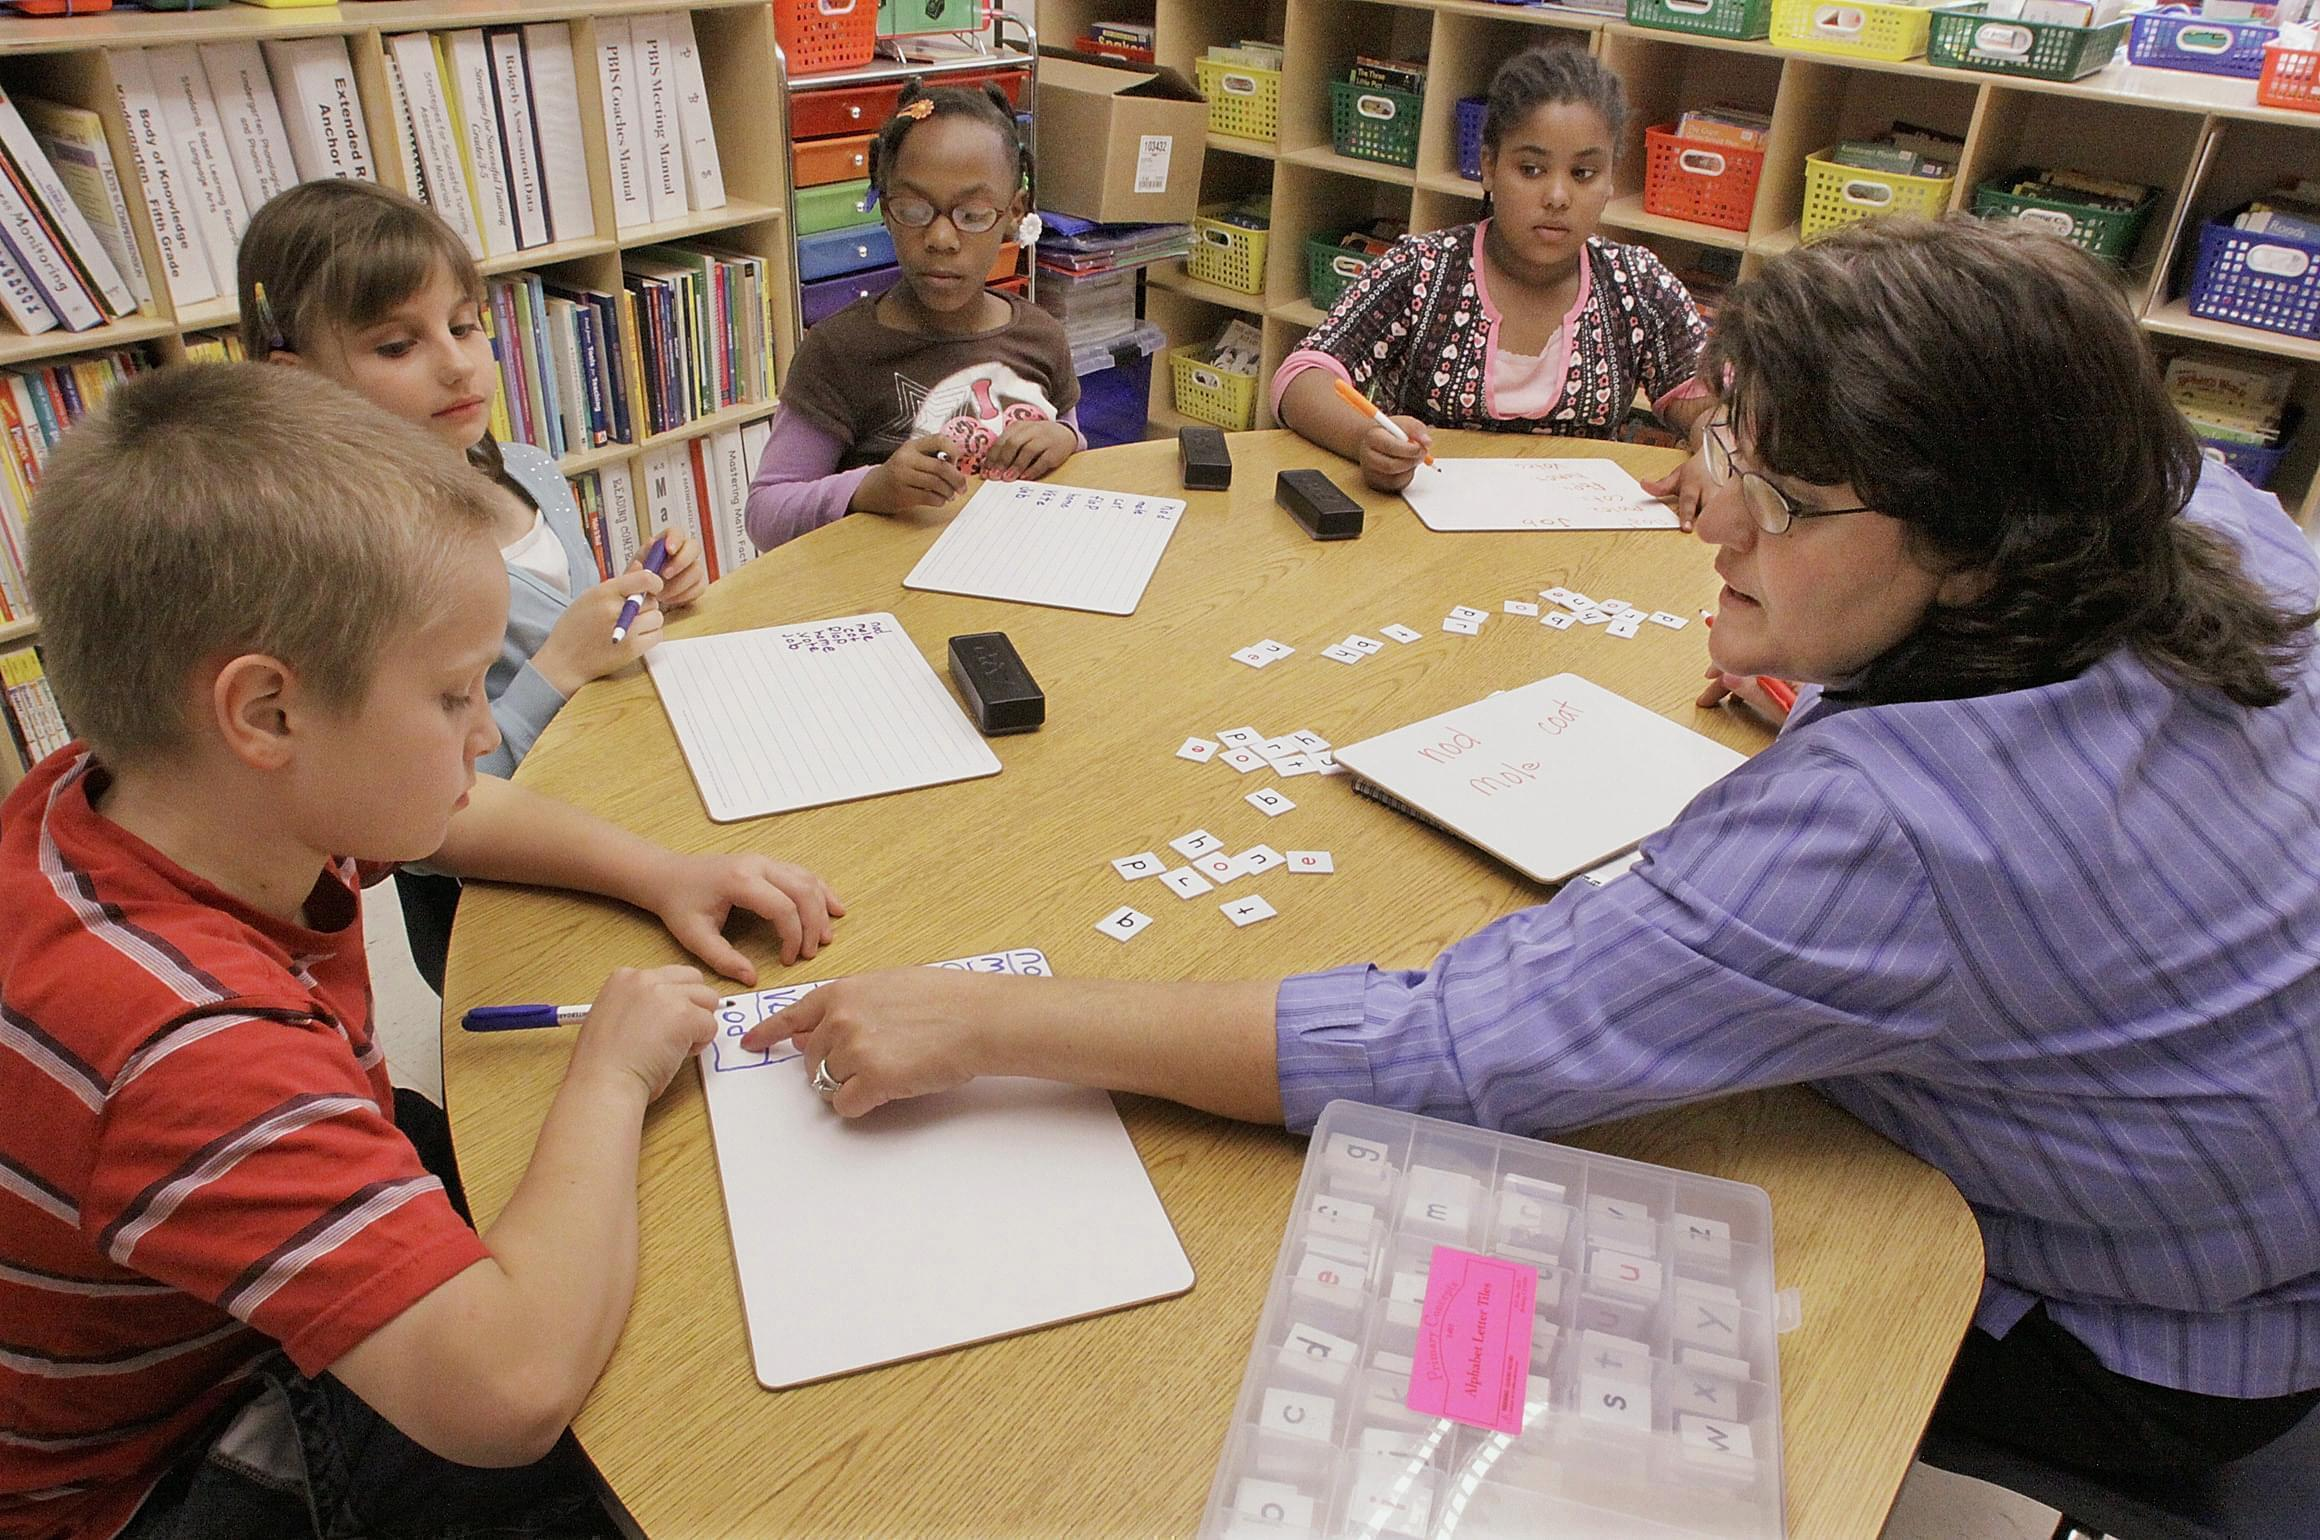 Jackie Peters, right, works with her third grade students at Ridgely Elementary School in Springfield, Ill. Over two years, Illinois will get about $1 billion in federal grants such as special education and Title I, which provides grants for low-inco